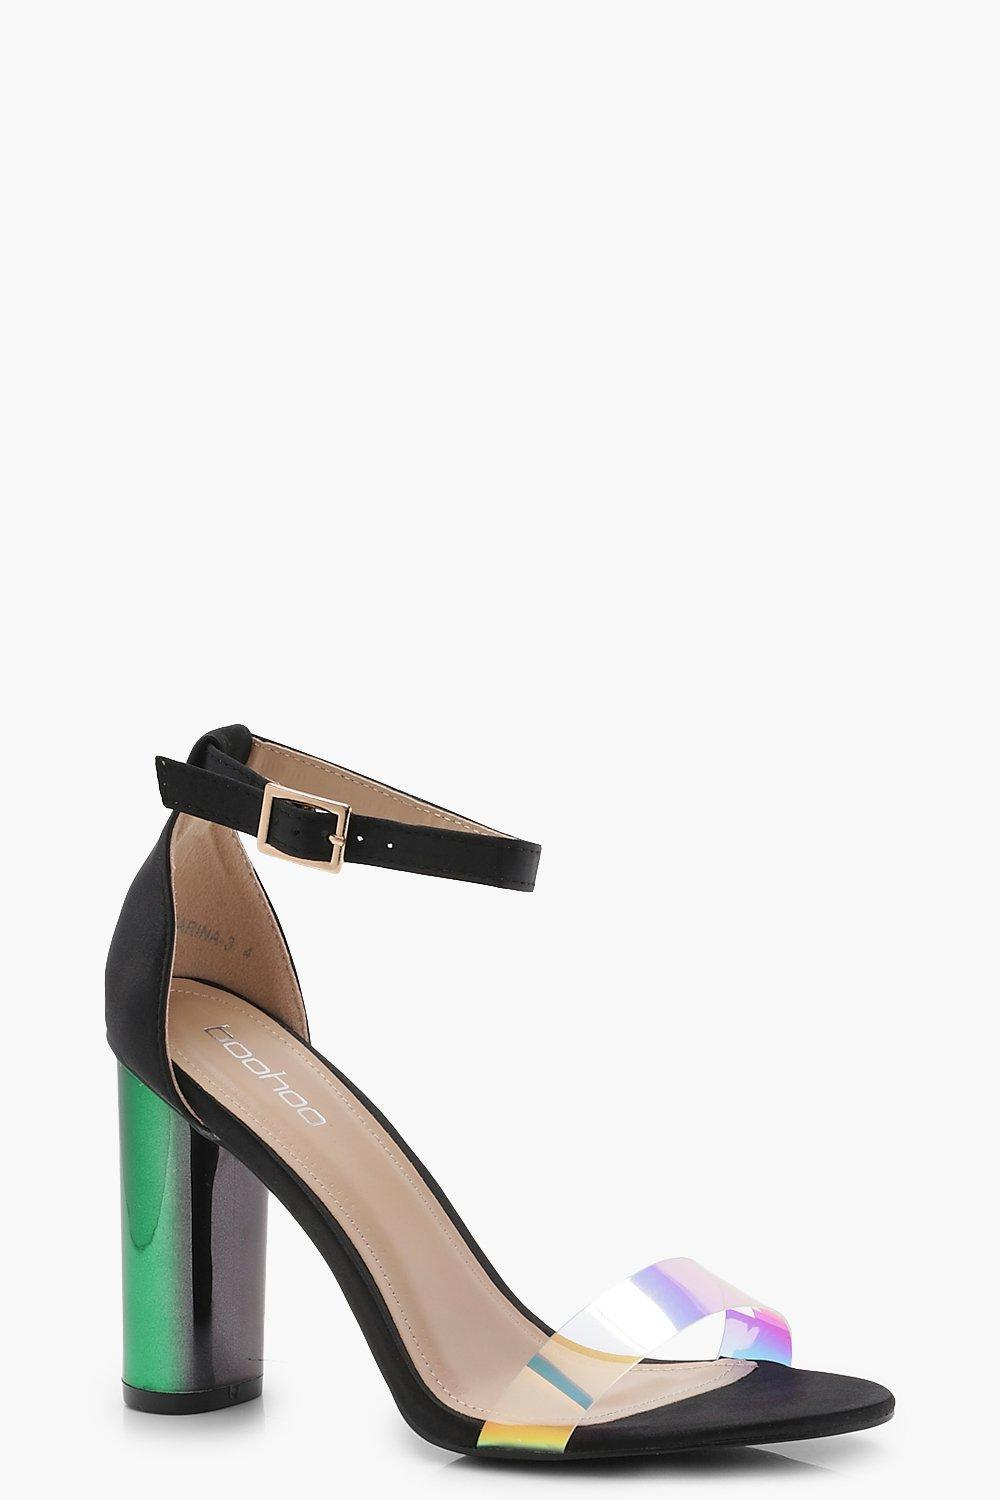 af69d0339403 Gallery. Previously sold at  Boohoo · Women s Kitten Heels ...